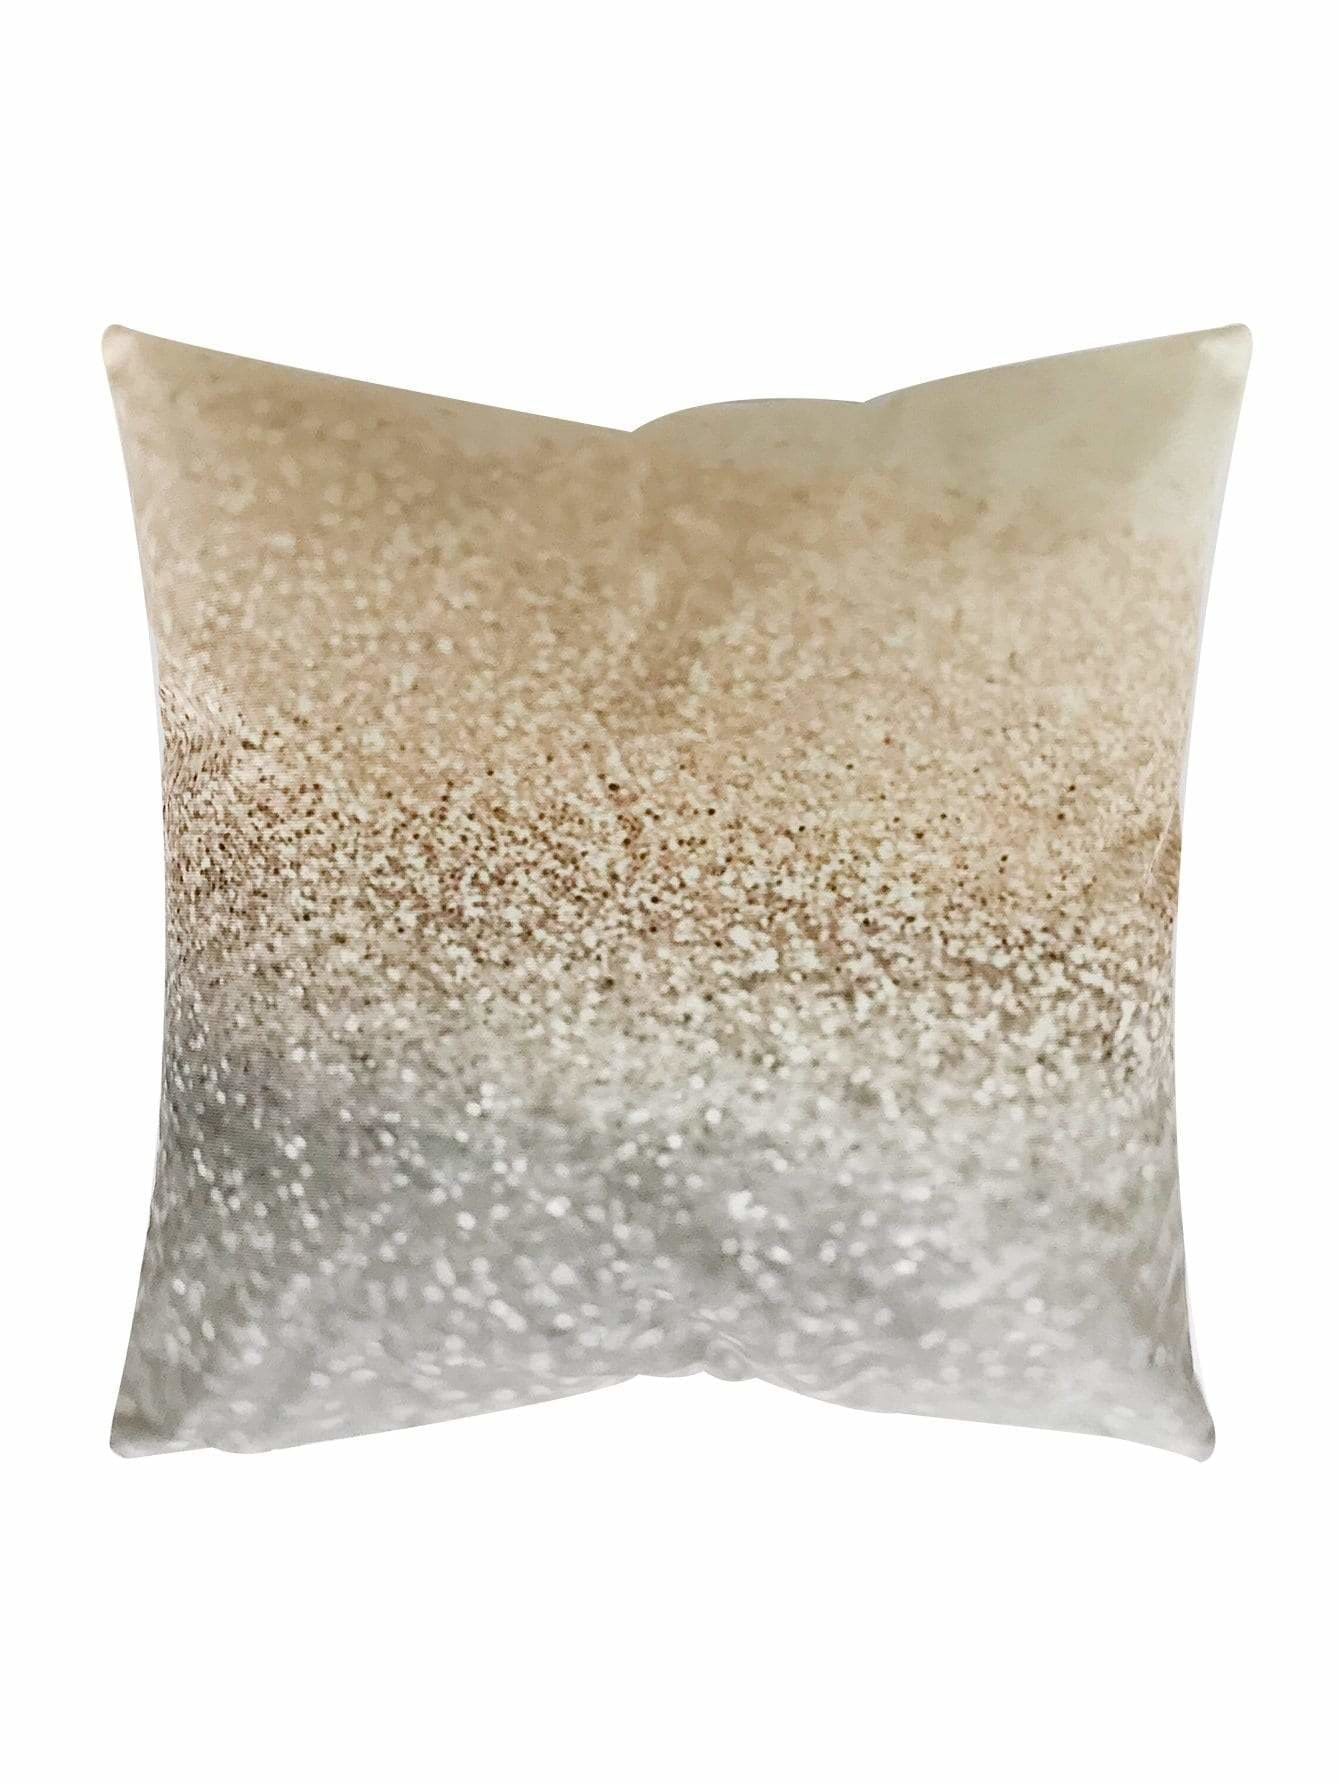 Gravel Print Pillowcase 1pc